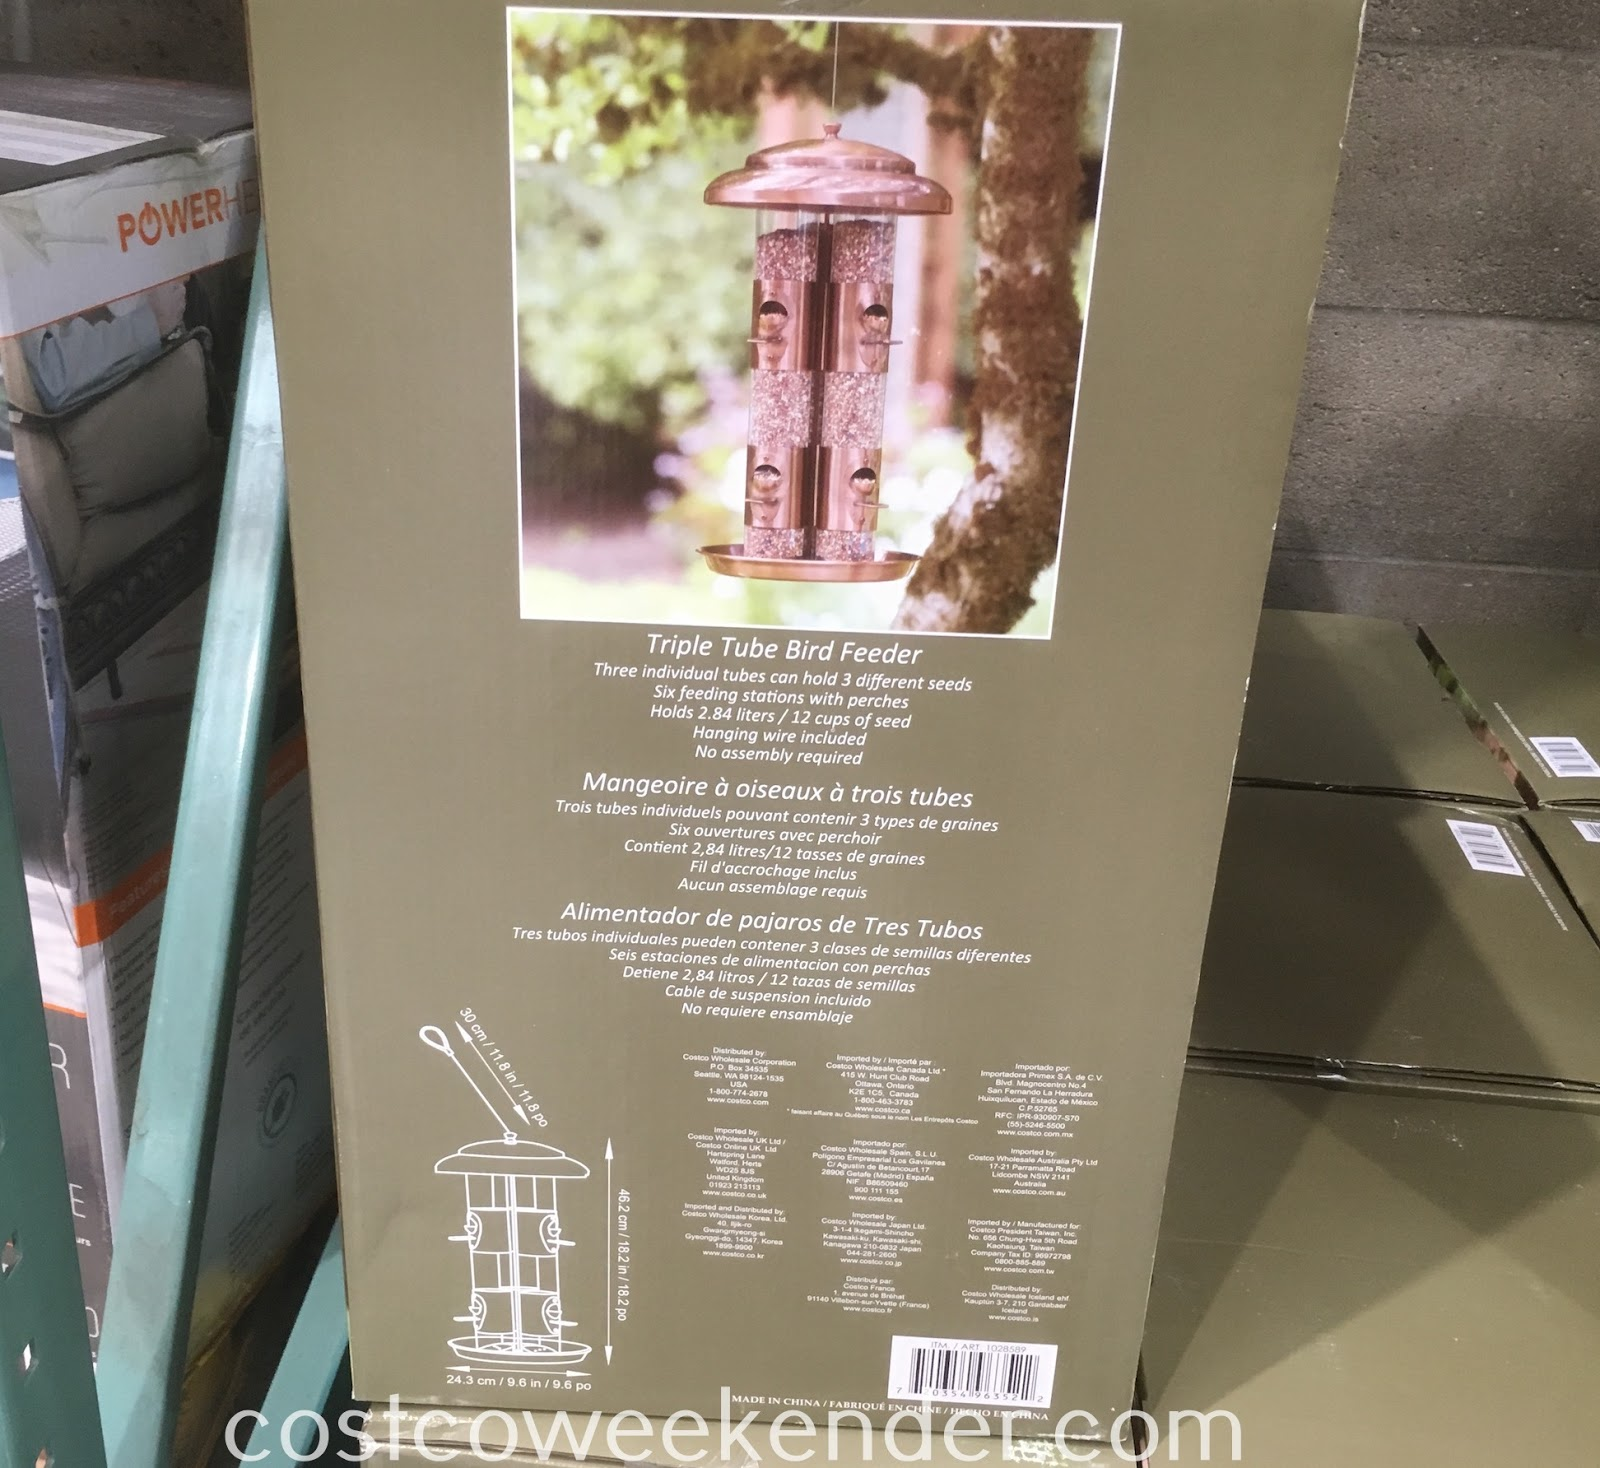 Costco 1028589 - Relax from the comforts of your home while watching birds feast on the Triple Tube Bird Feeder